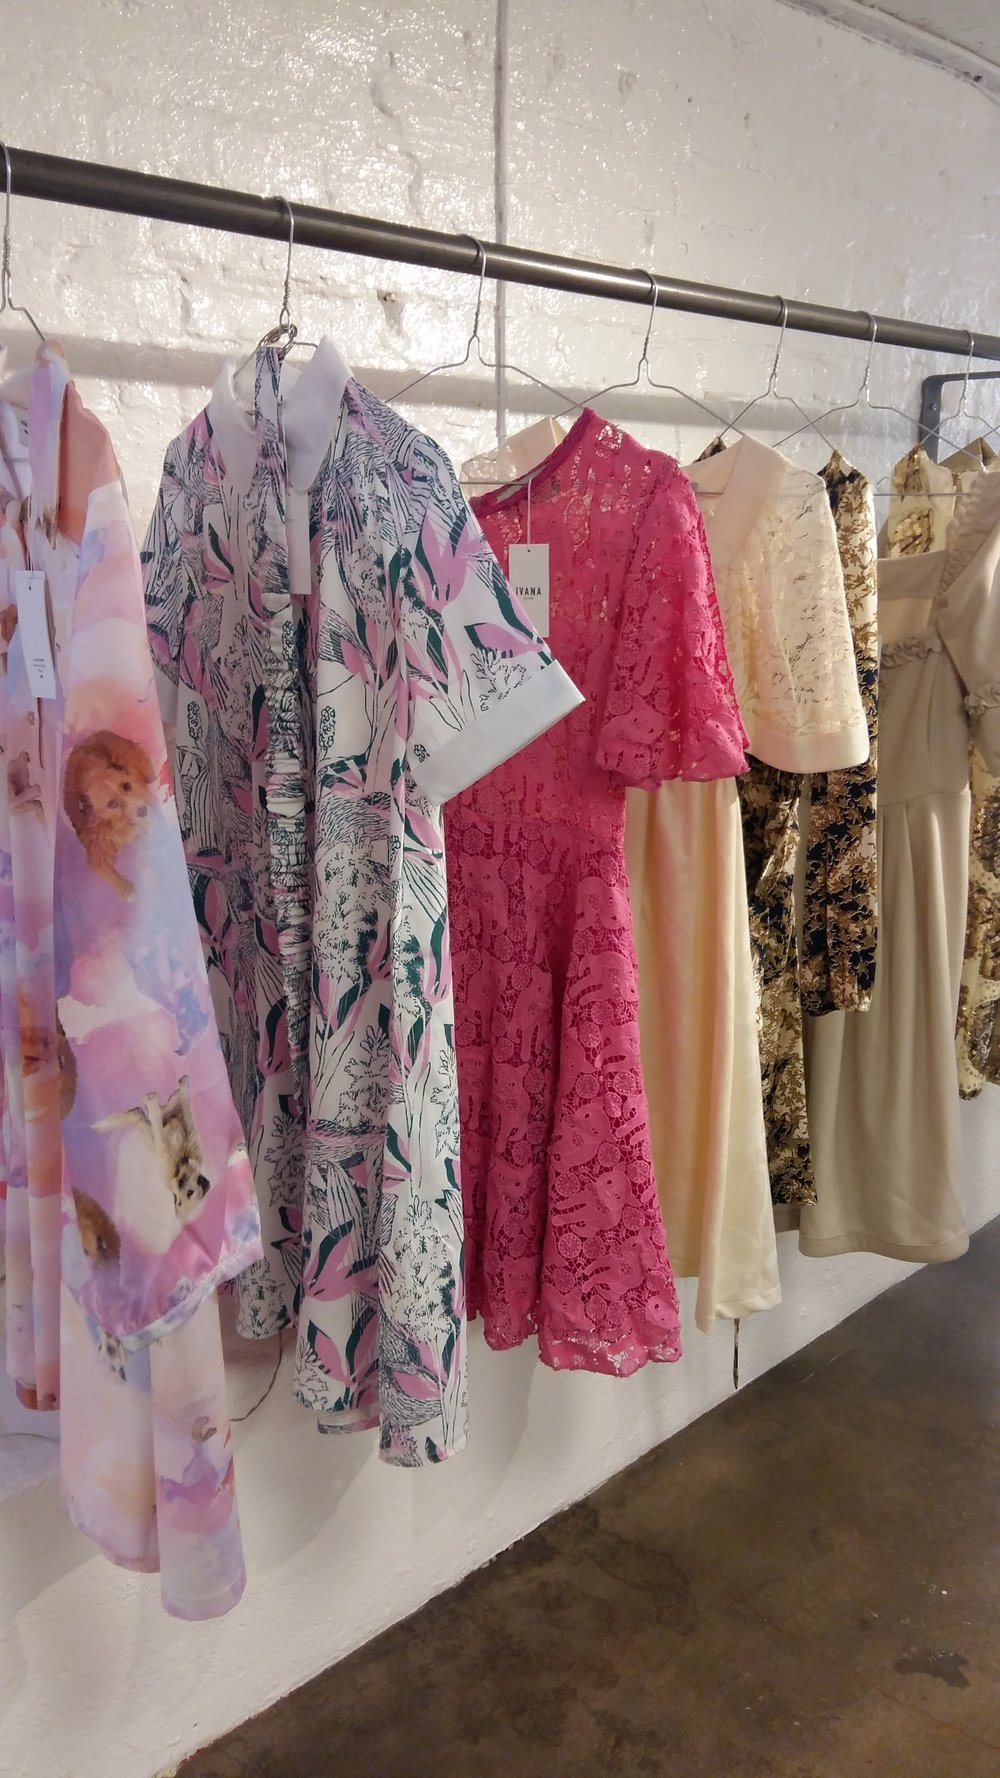 Sharing Economy: Leininkilainaamo Dress Rental in Helsinki -